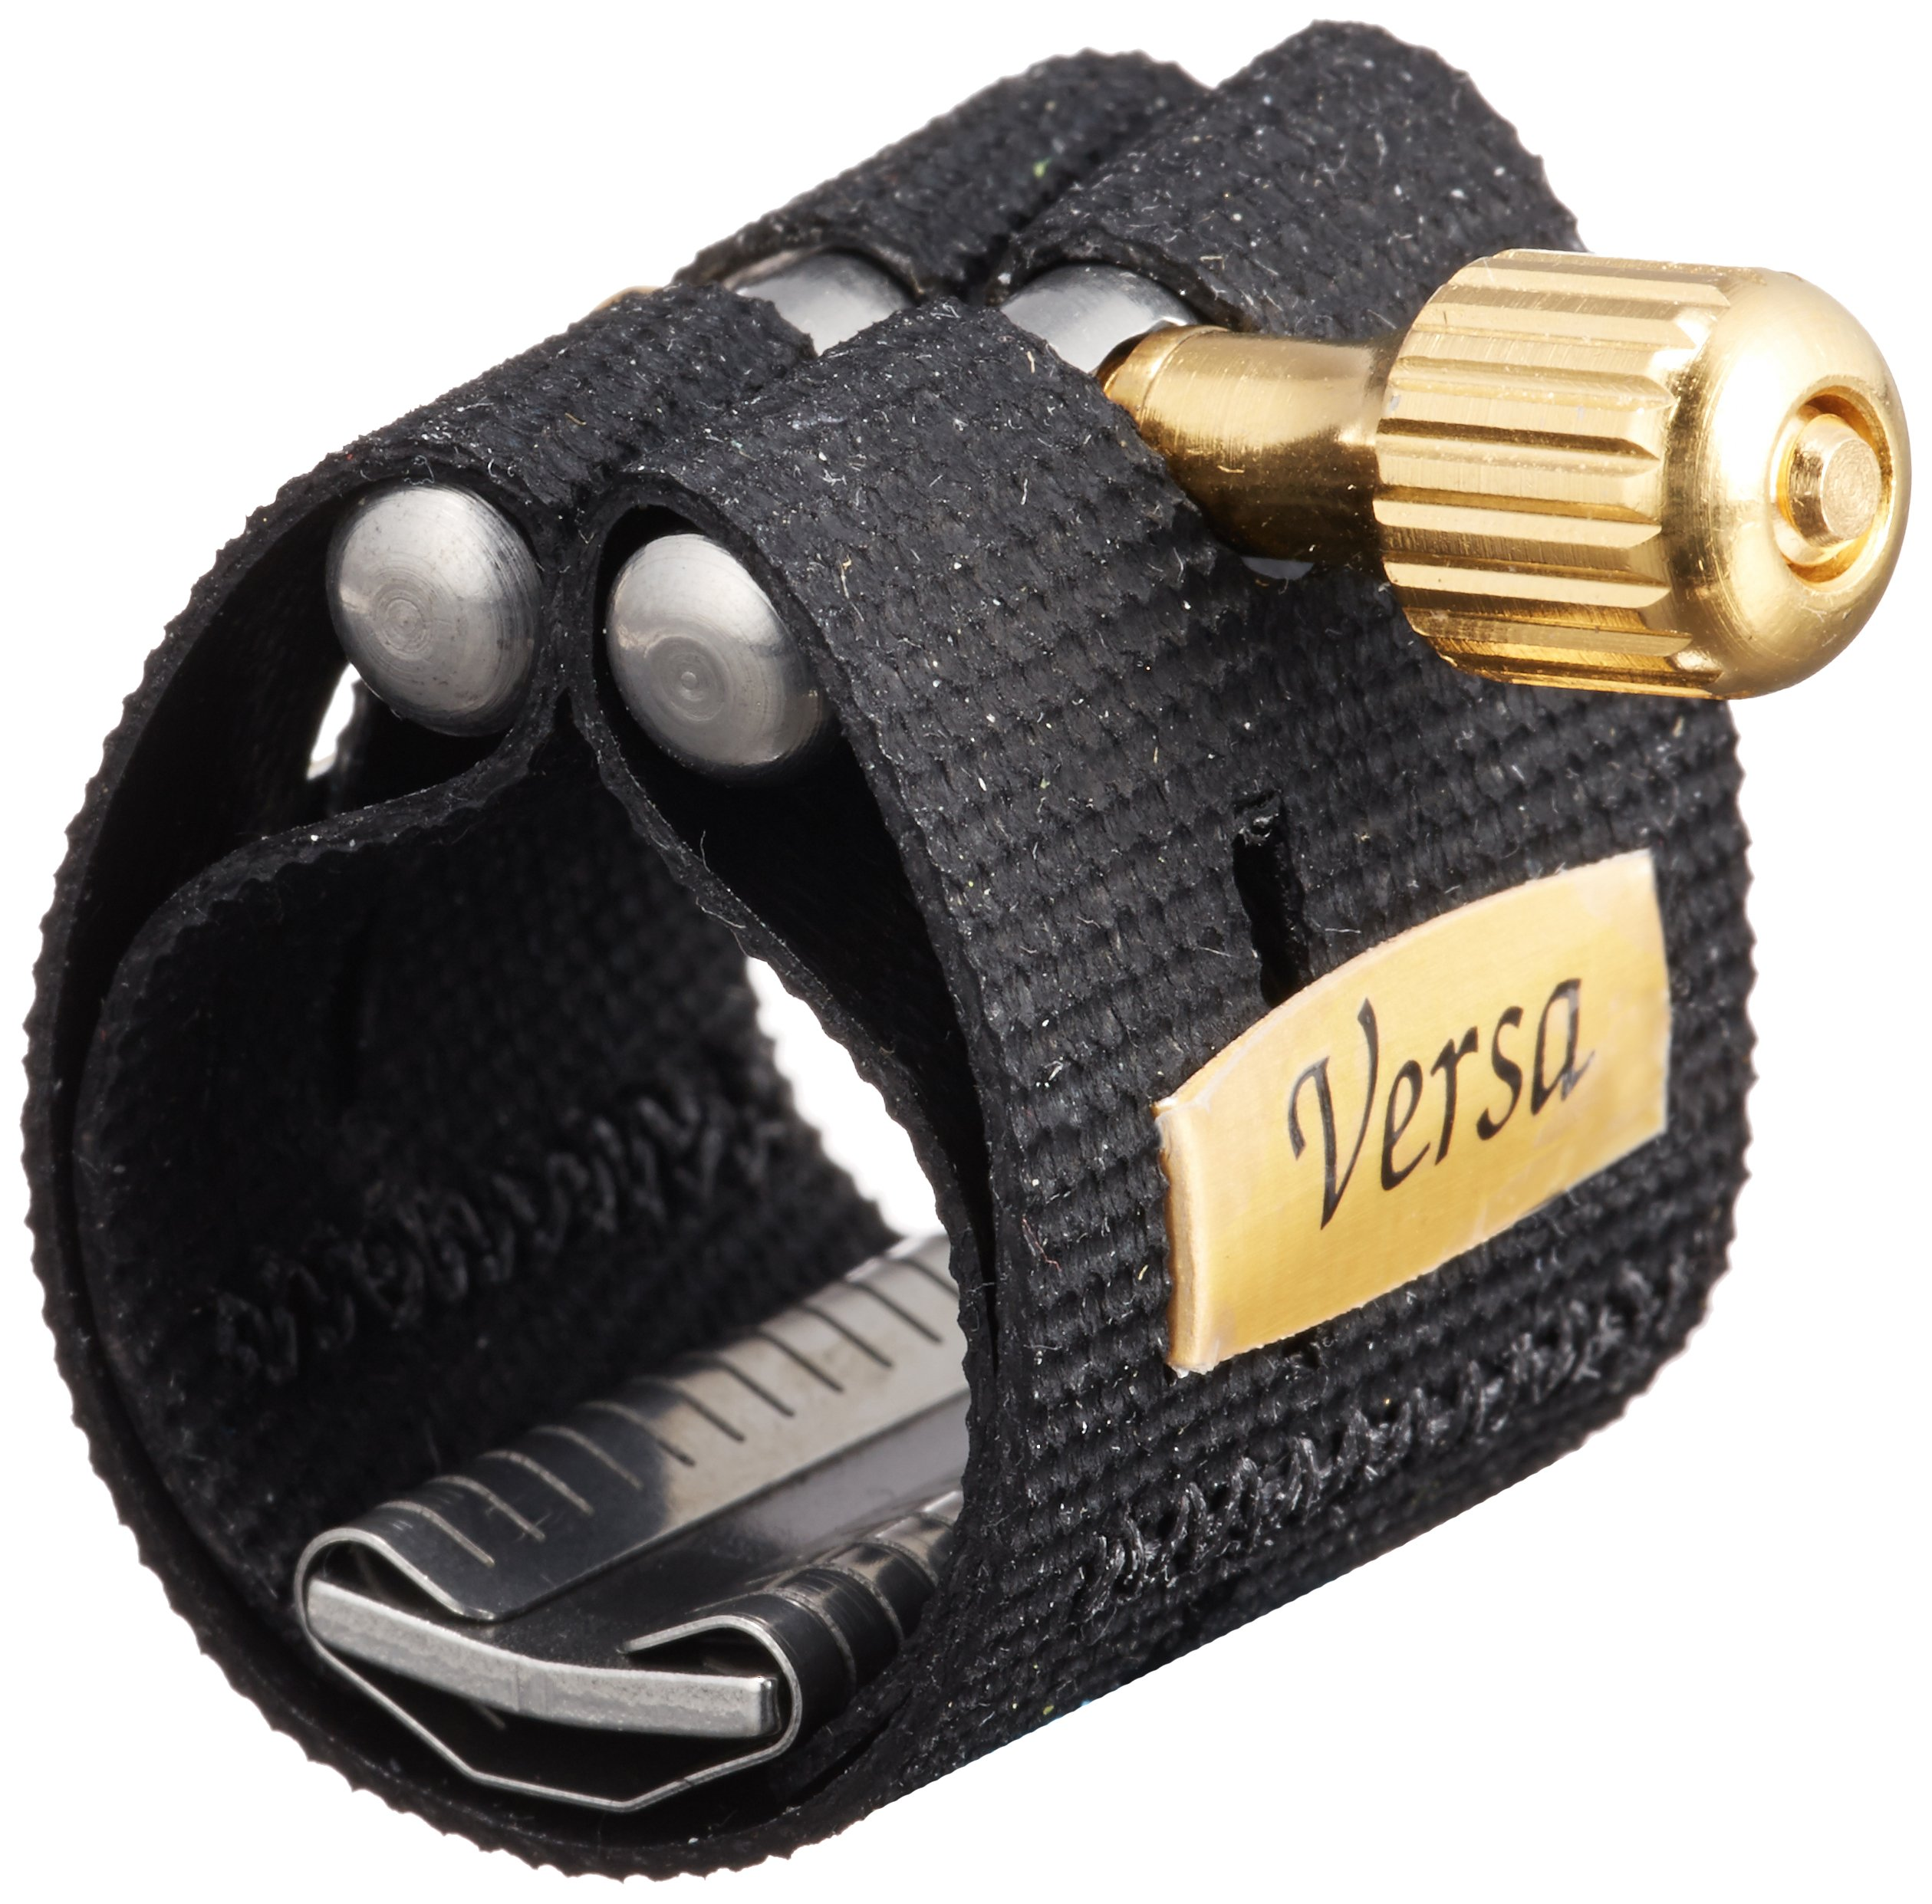 Rovner V1RVS Versa Ligature with Cap for Hard Rubber Soprano Sax, Gold Fittings